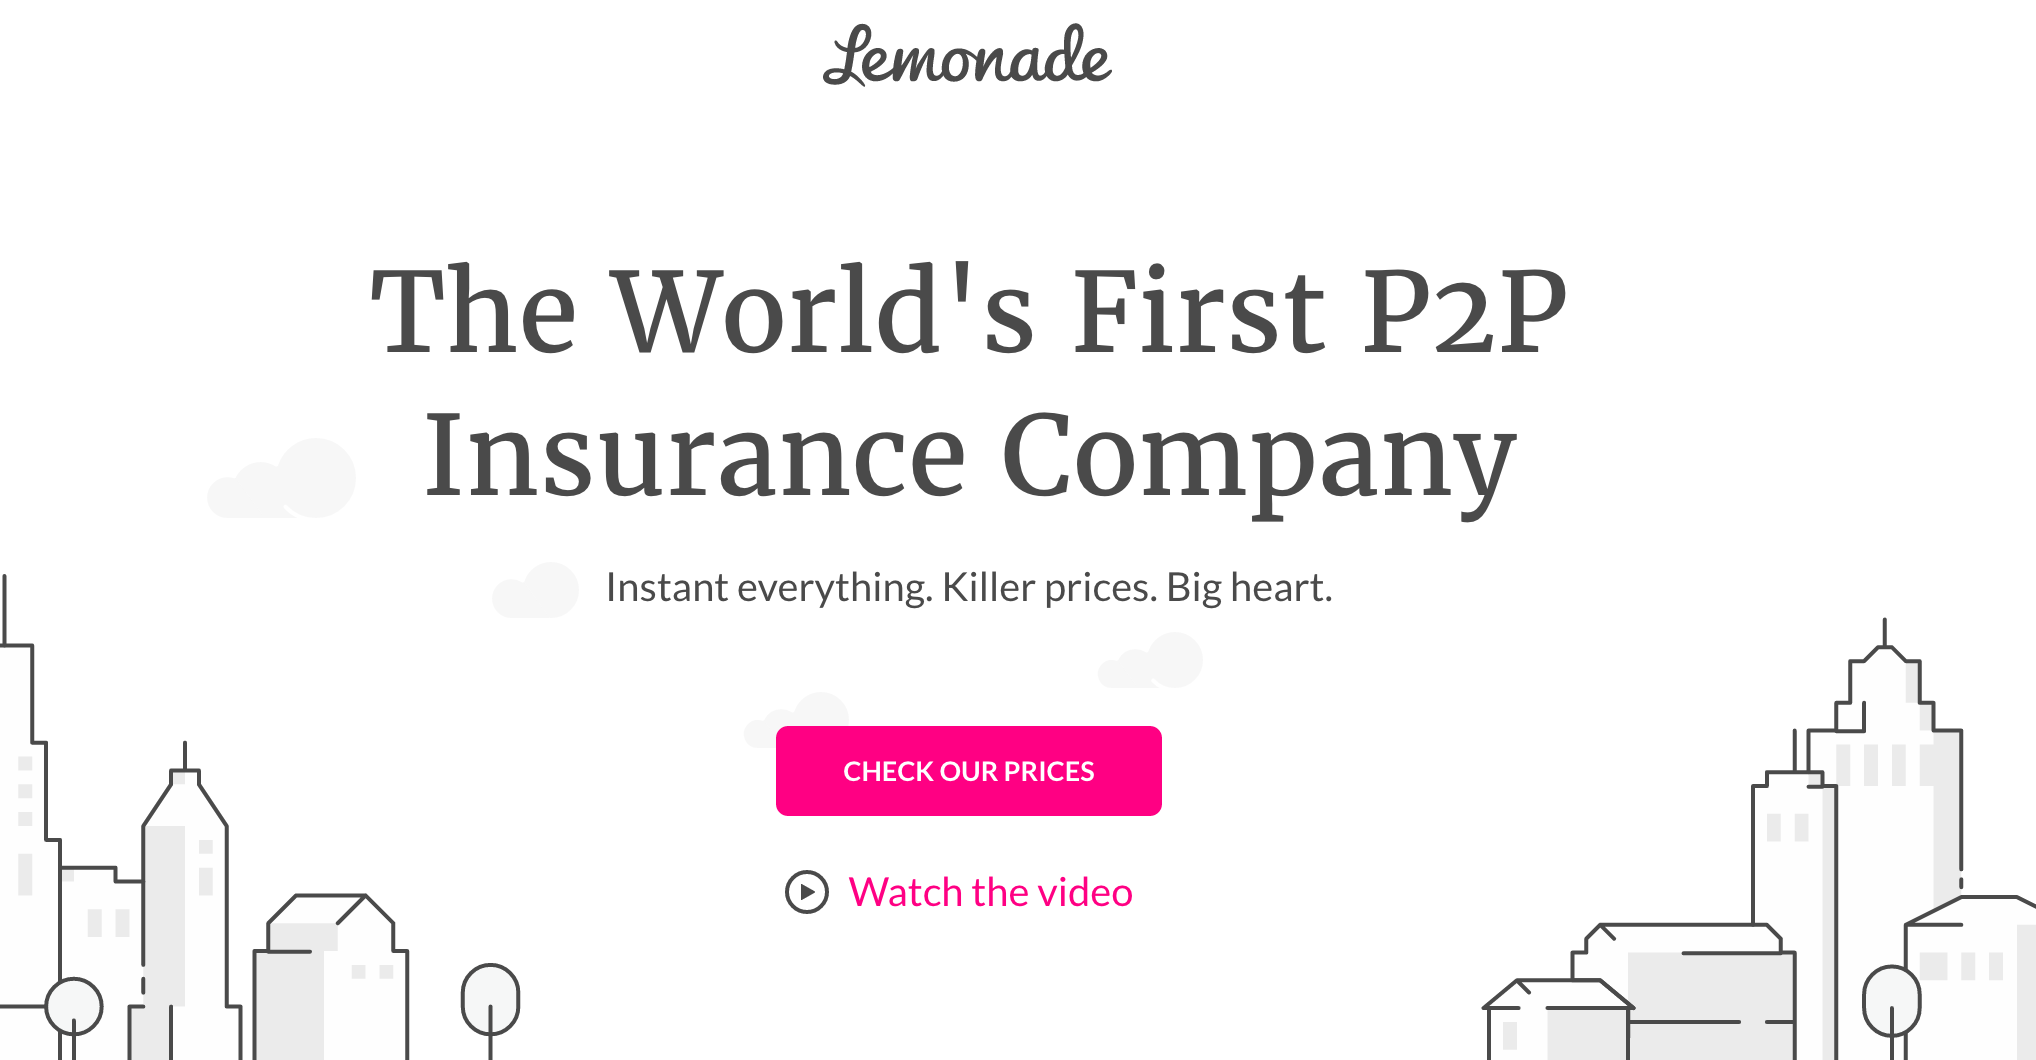 Lemonade, the peertopeer insurtech startup that launched